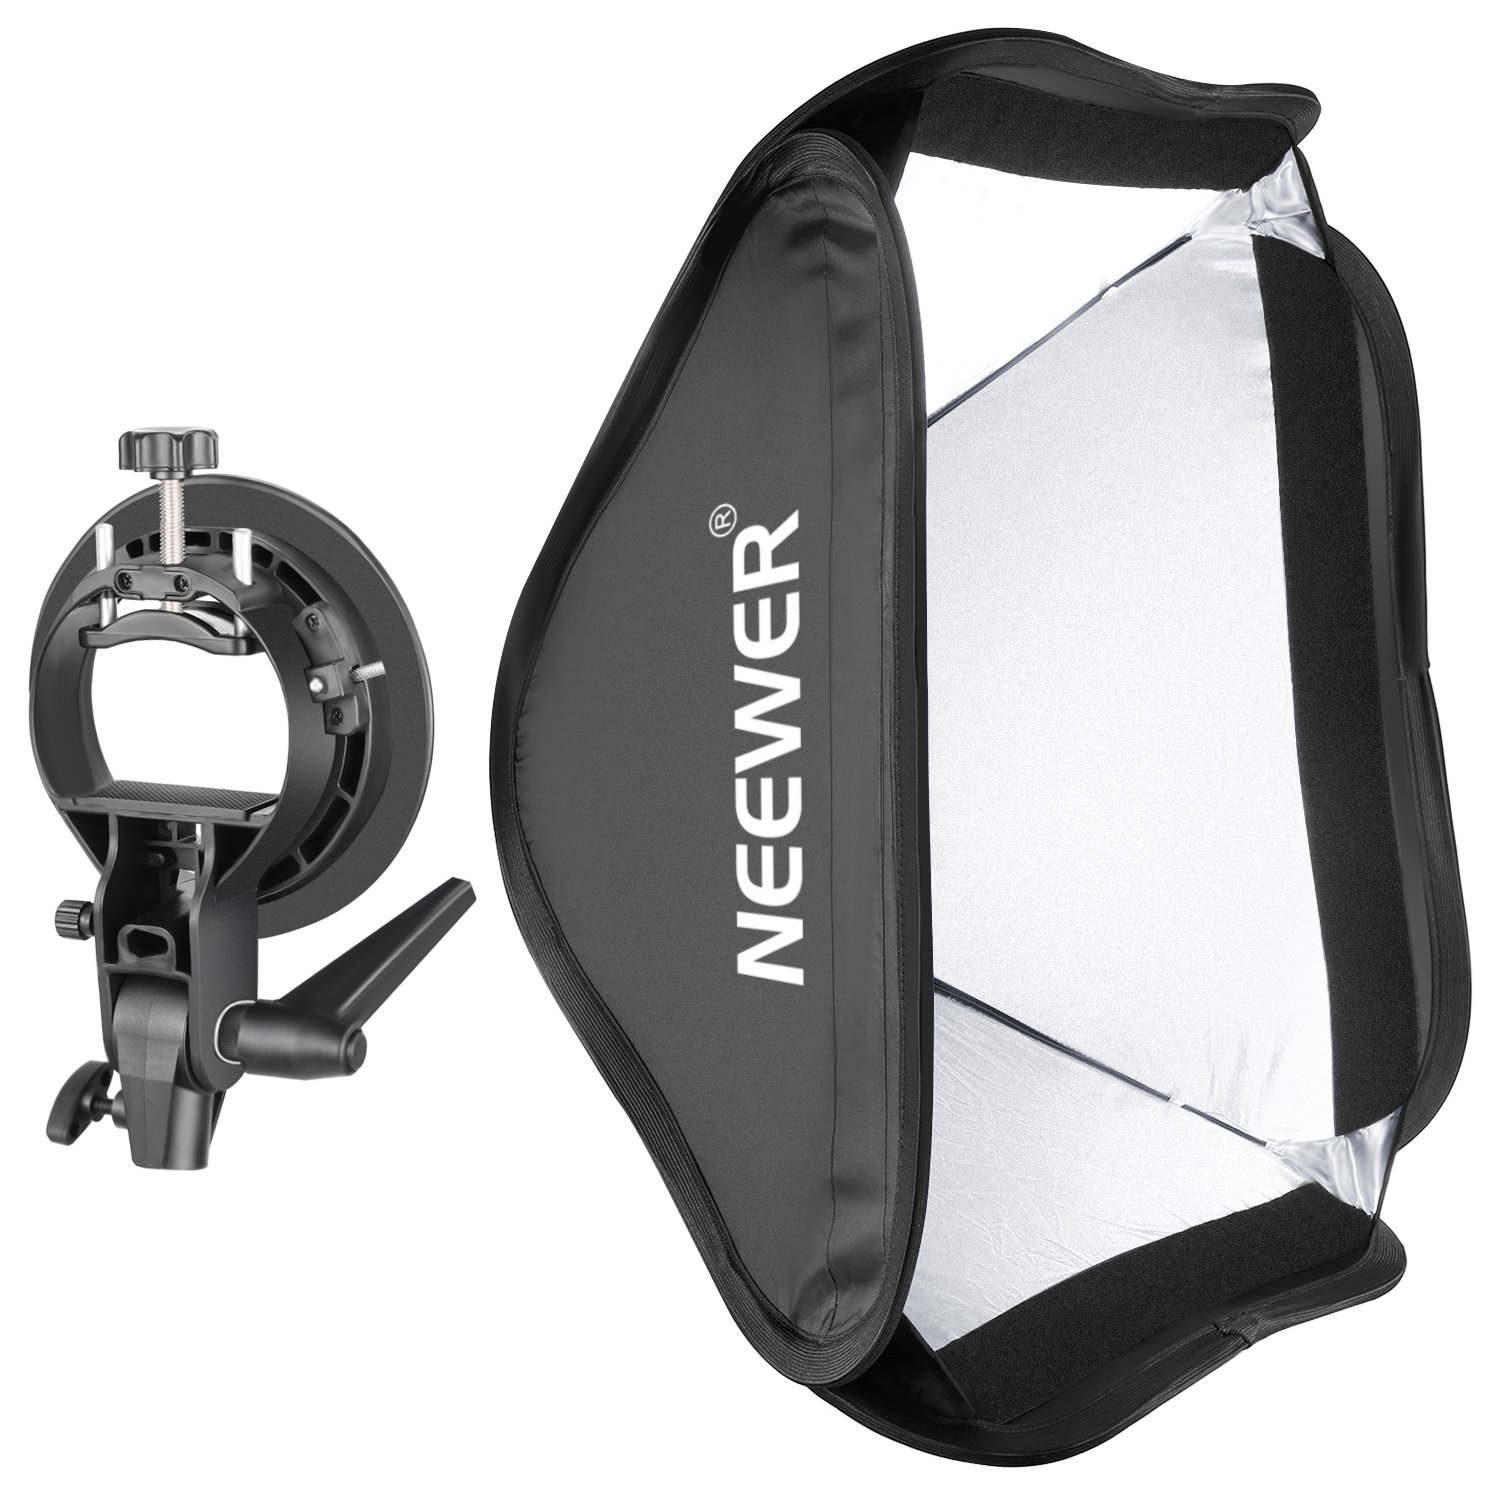 Neewer Collapsible 24x24 inches/60x60 centimeters Softbox with S-type Bracket Mount for Speedlite Studio Flash Monolight,Portrait and Product Photography by Neewer